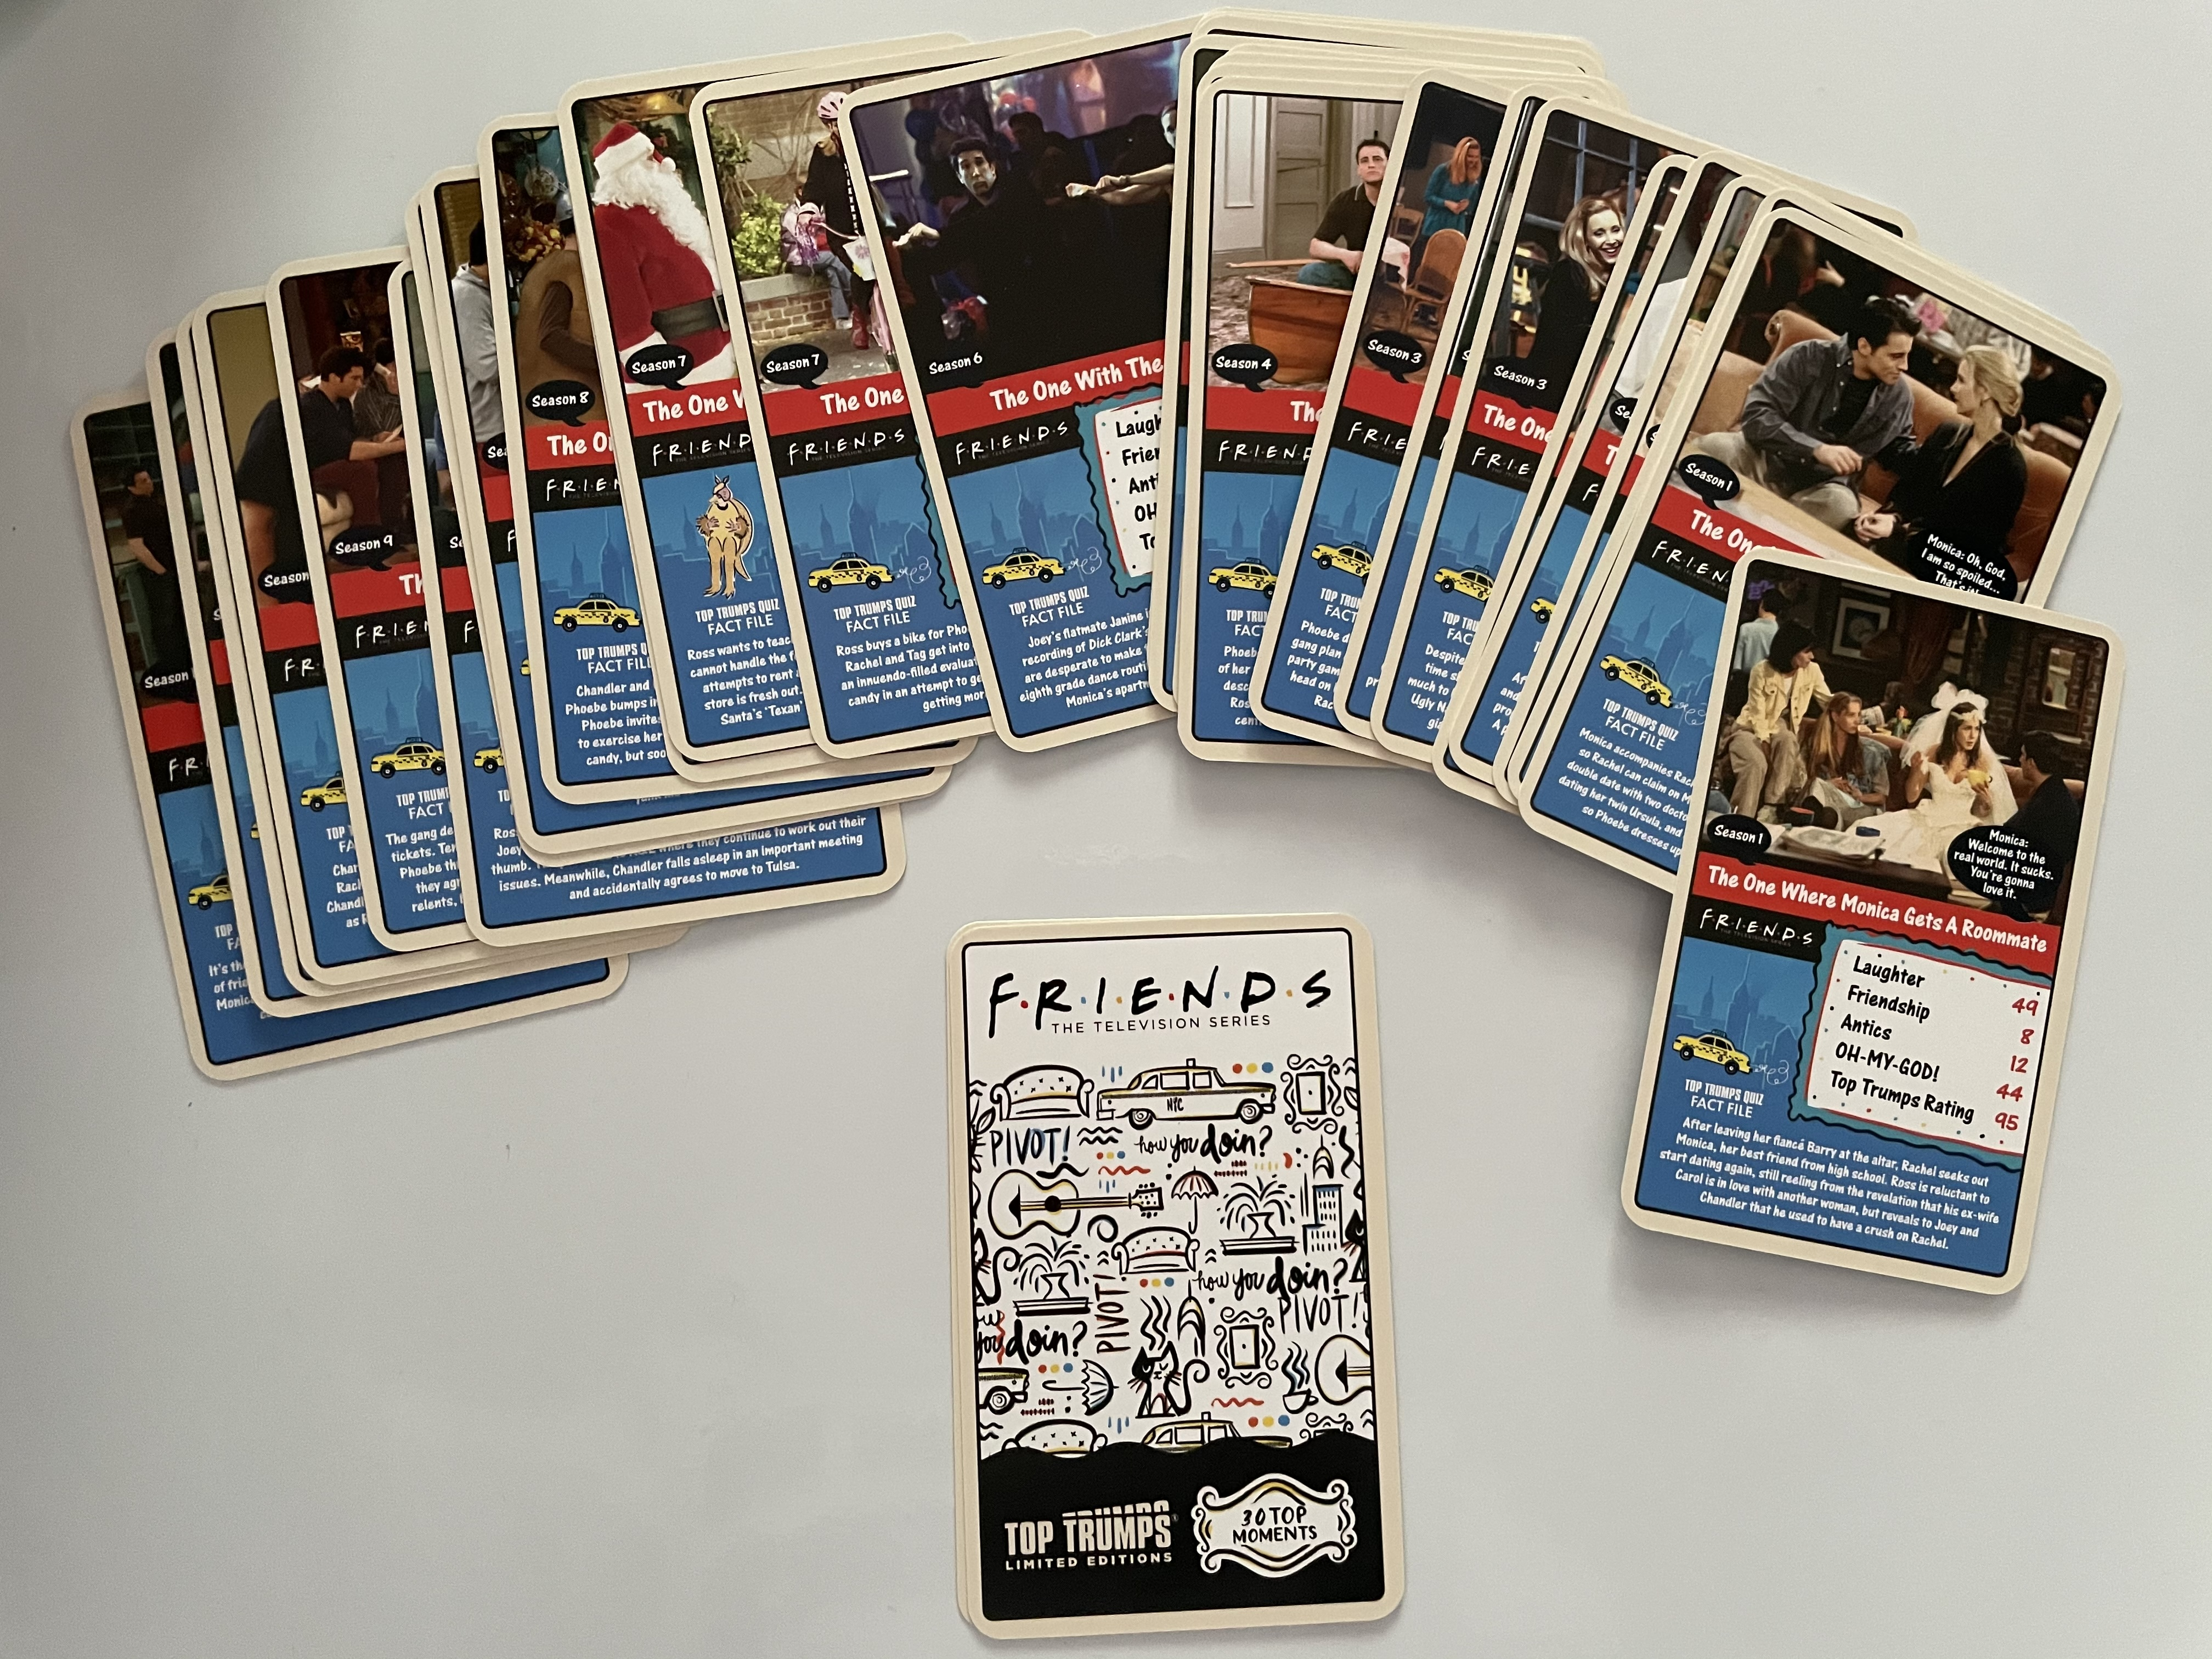 Top Trumps – Limited Edition – Friends